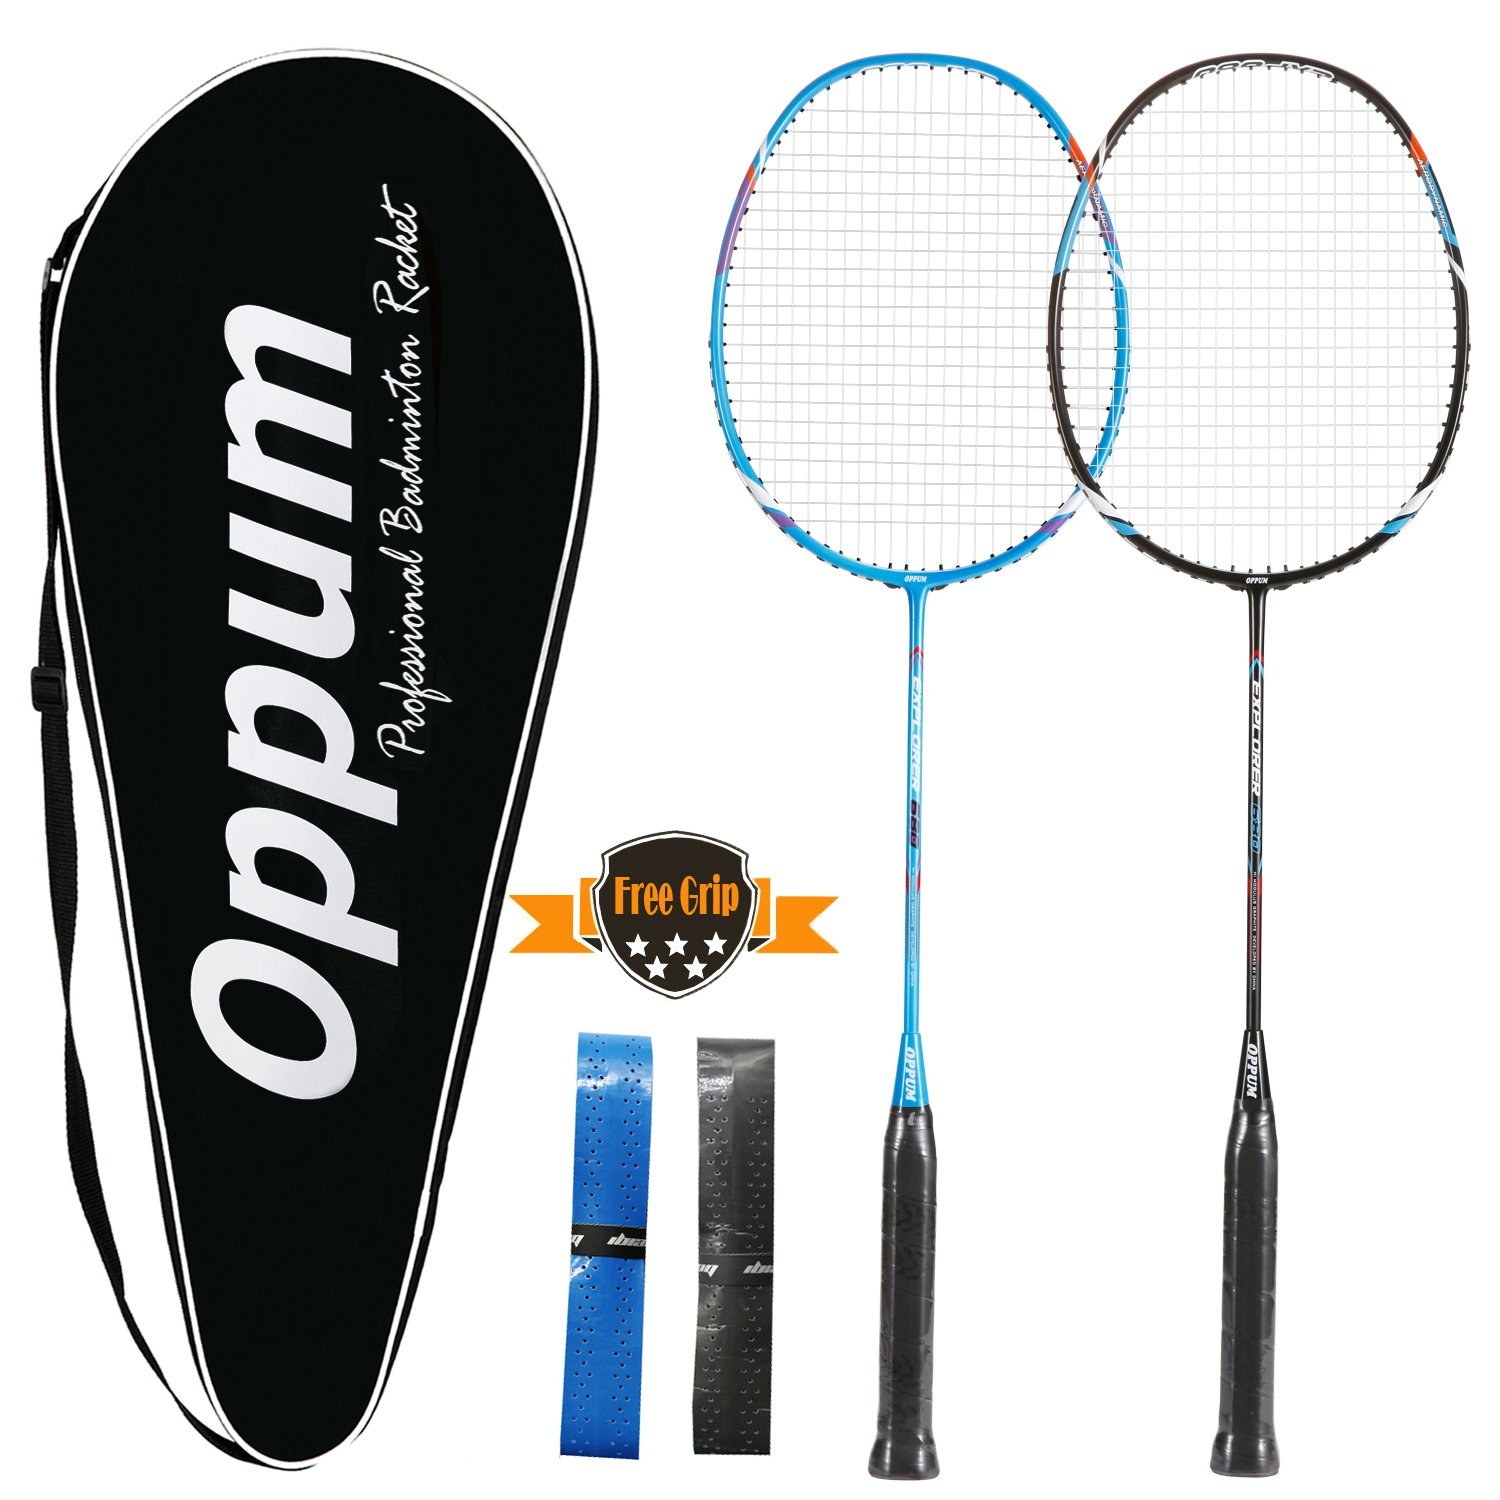 OPPUM 100% Full-Carbon Fiber Professional 2 Player Badminton Racquets Set Carbon-fiber Badminton Rackets Including 2 Rackets/1 Carrying Bag/2 Overgrips